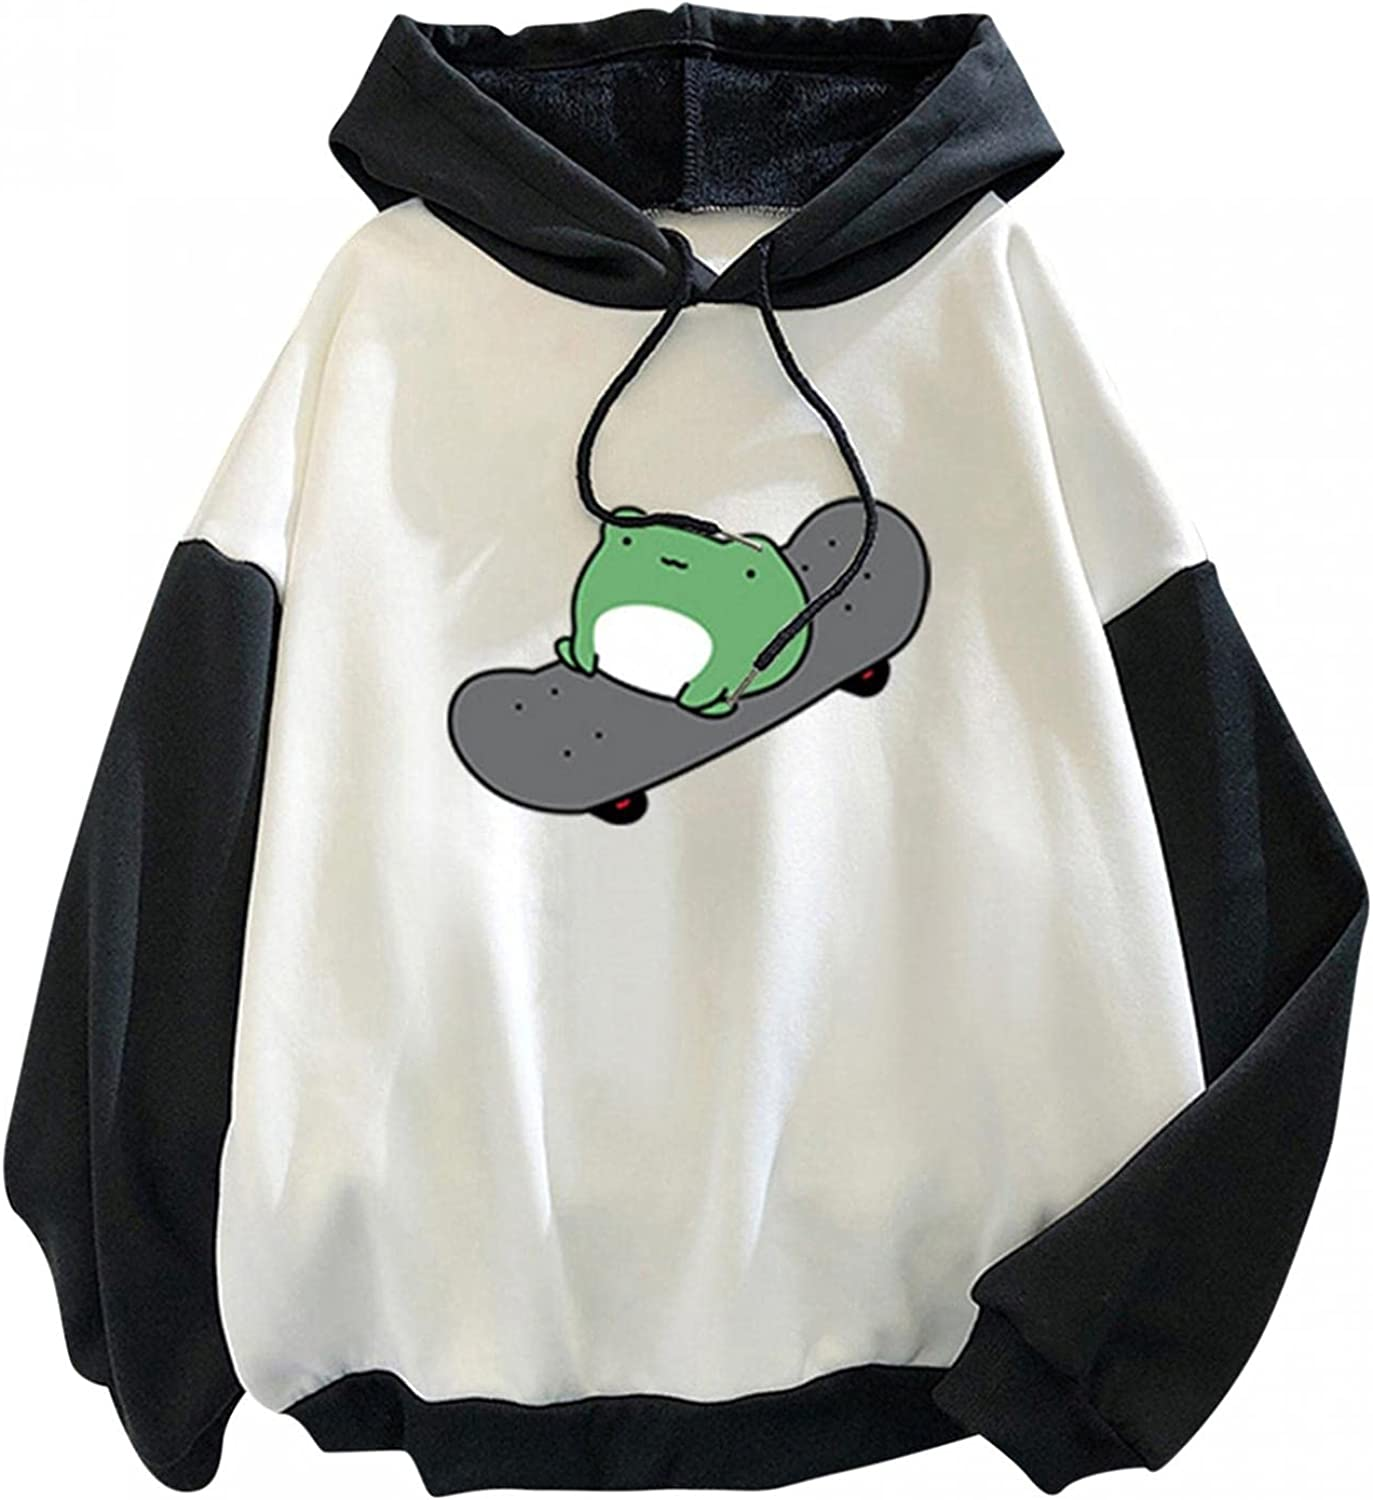 Haheyrte Hoodies for Womens Long Sleeve Cute Skateboarding Frog Hooded Casual Loose Sweatshirts Pullover Tops Shirts